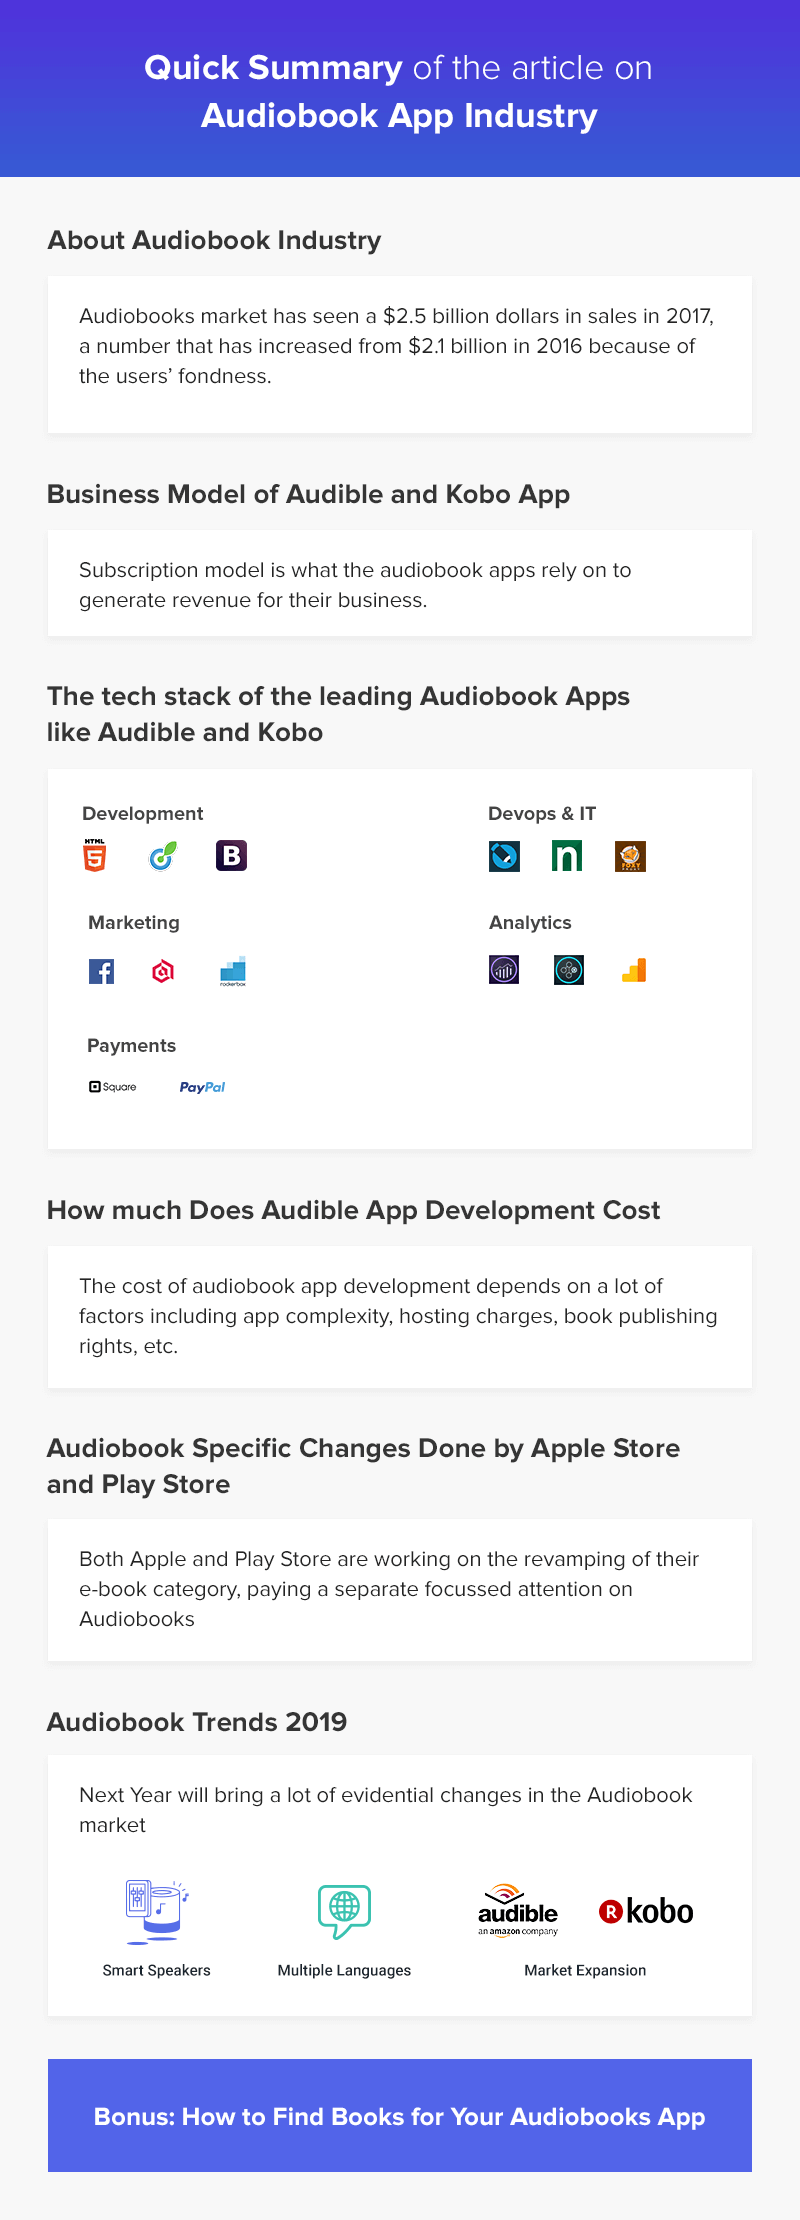 Quick Summary of the Article on Audiobook App Industry